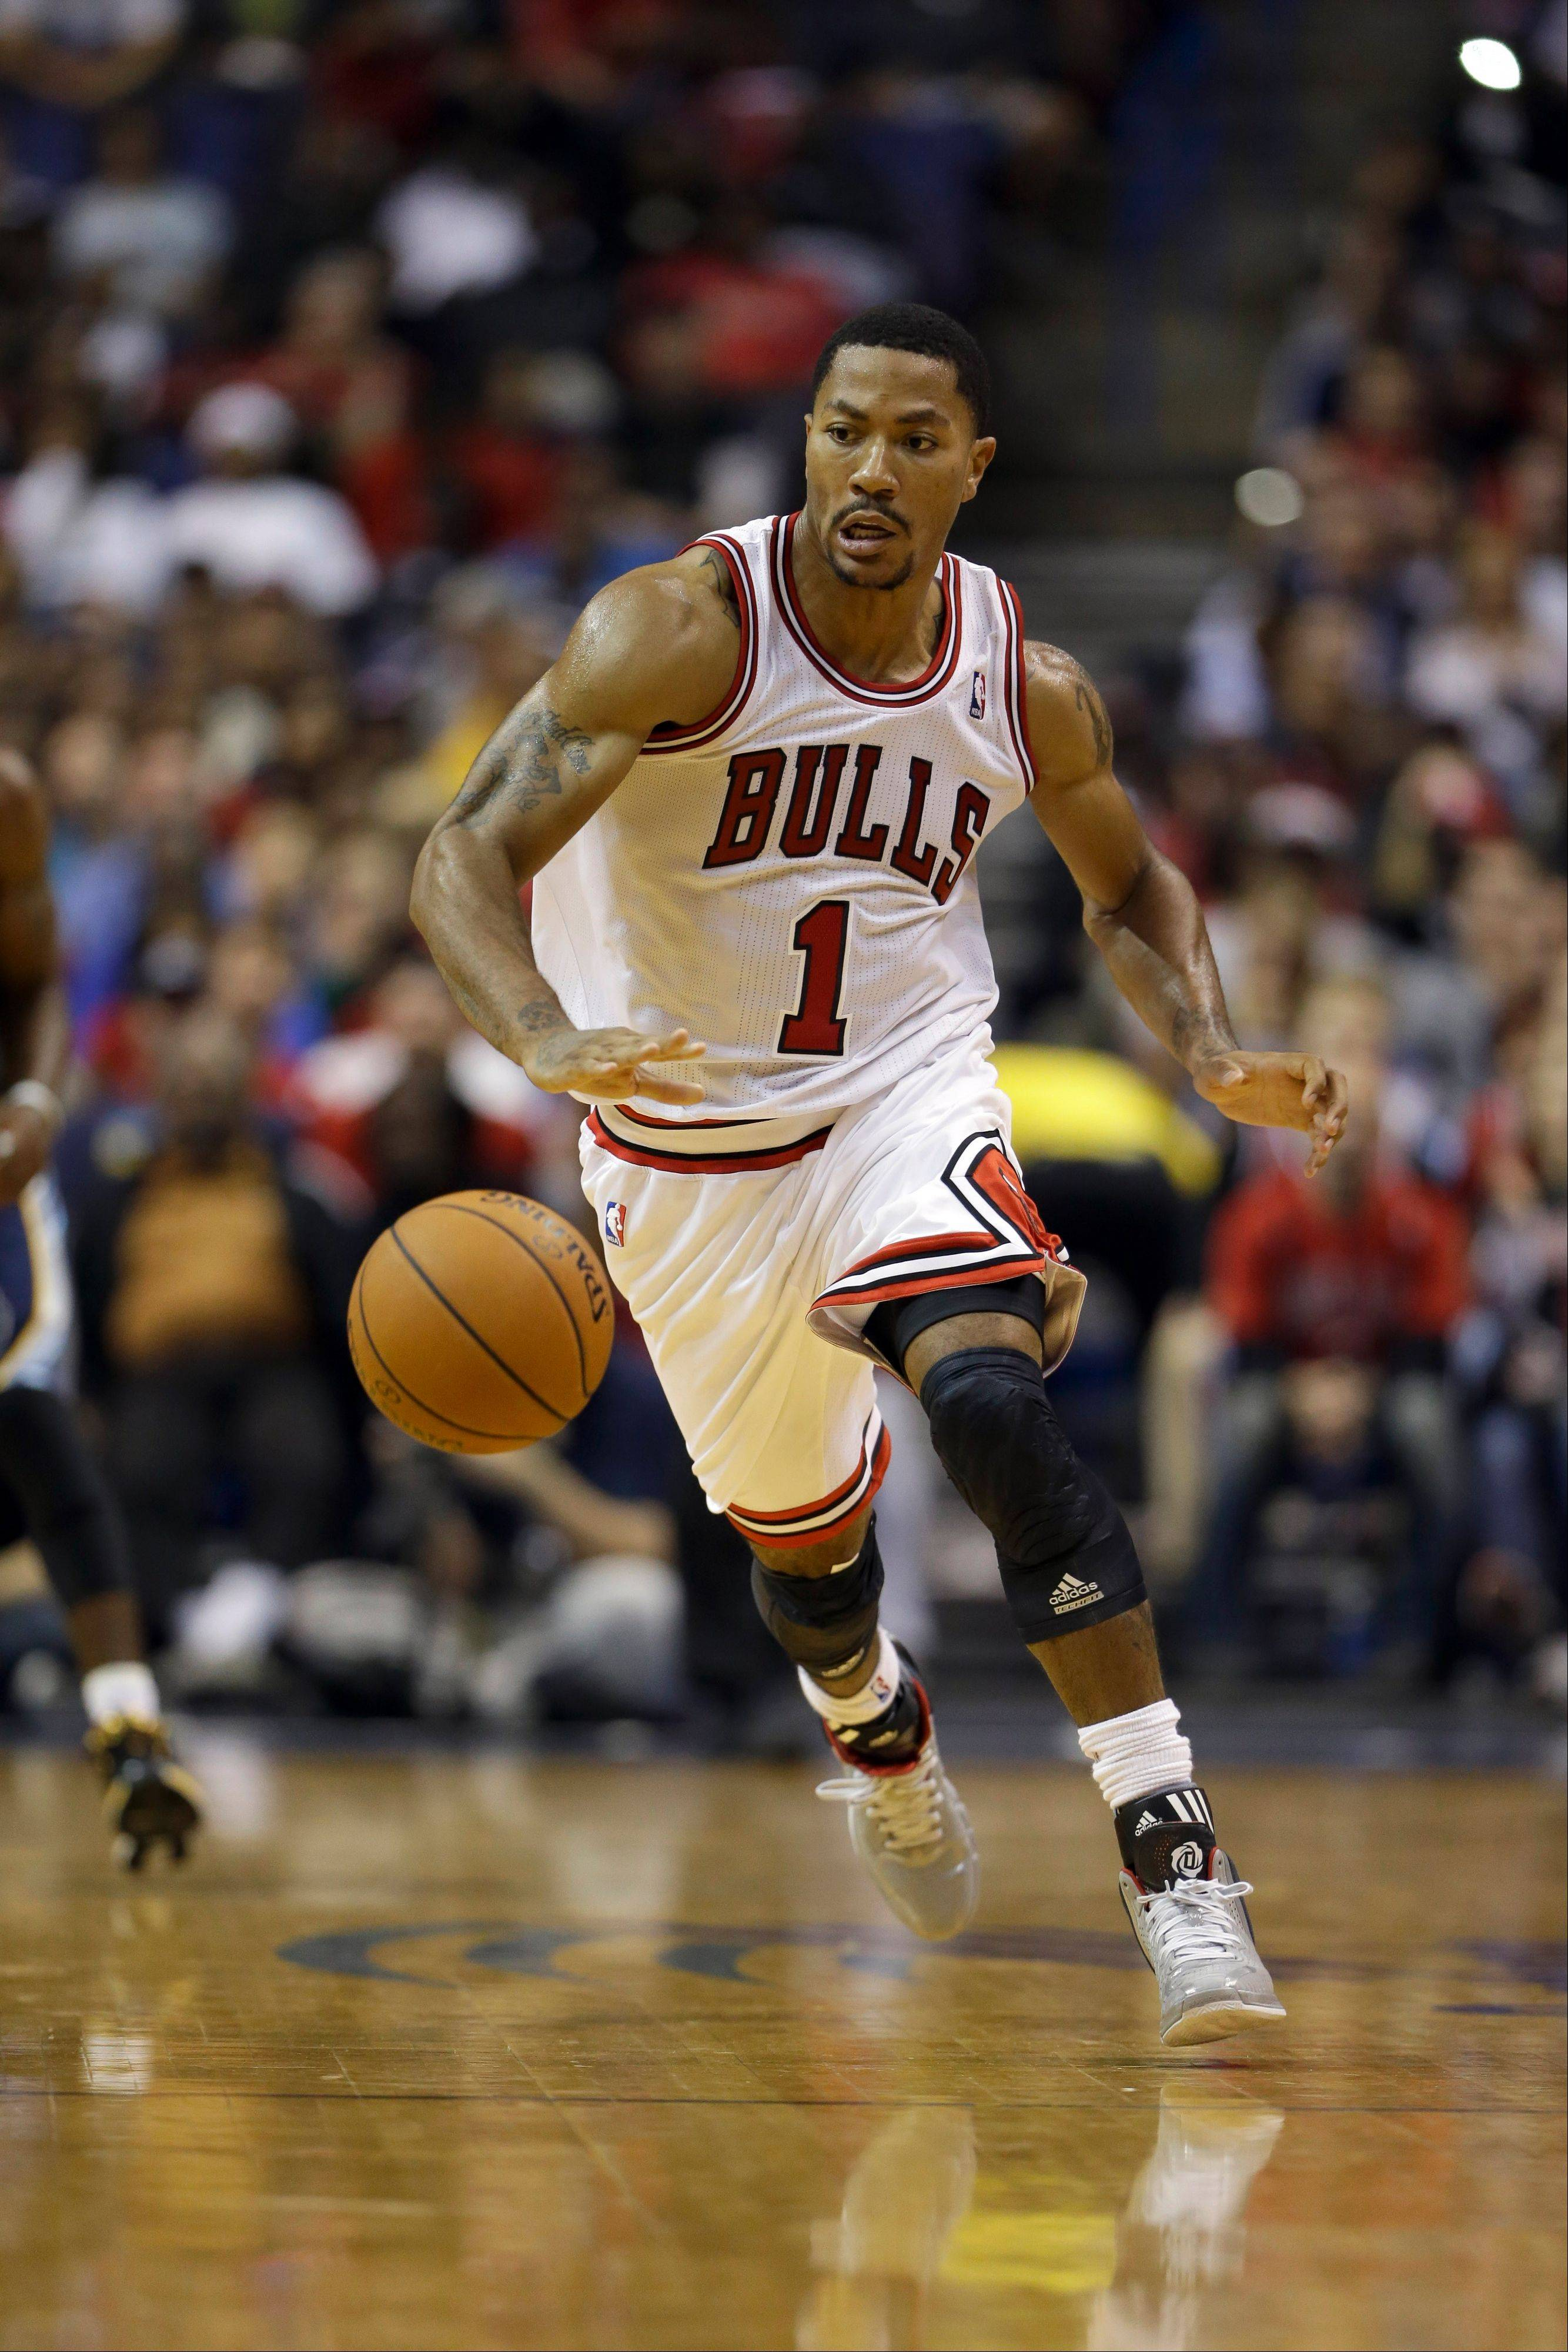 Derrick Rose made it clear Monday at the Berto Center that his left knee is feeling just fine.